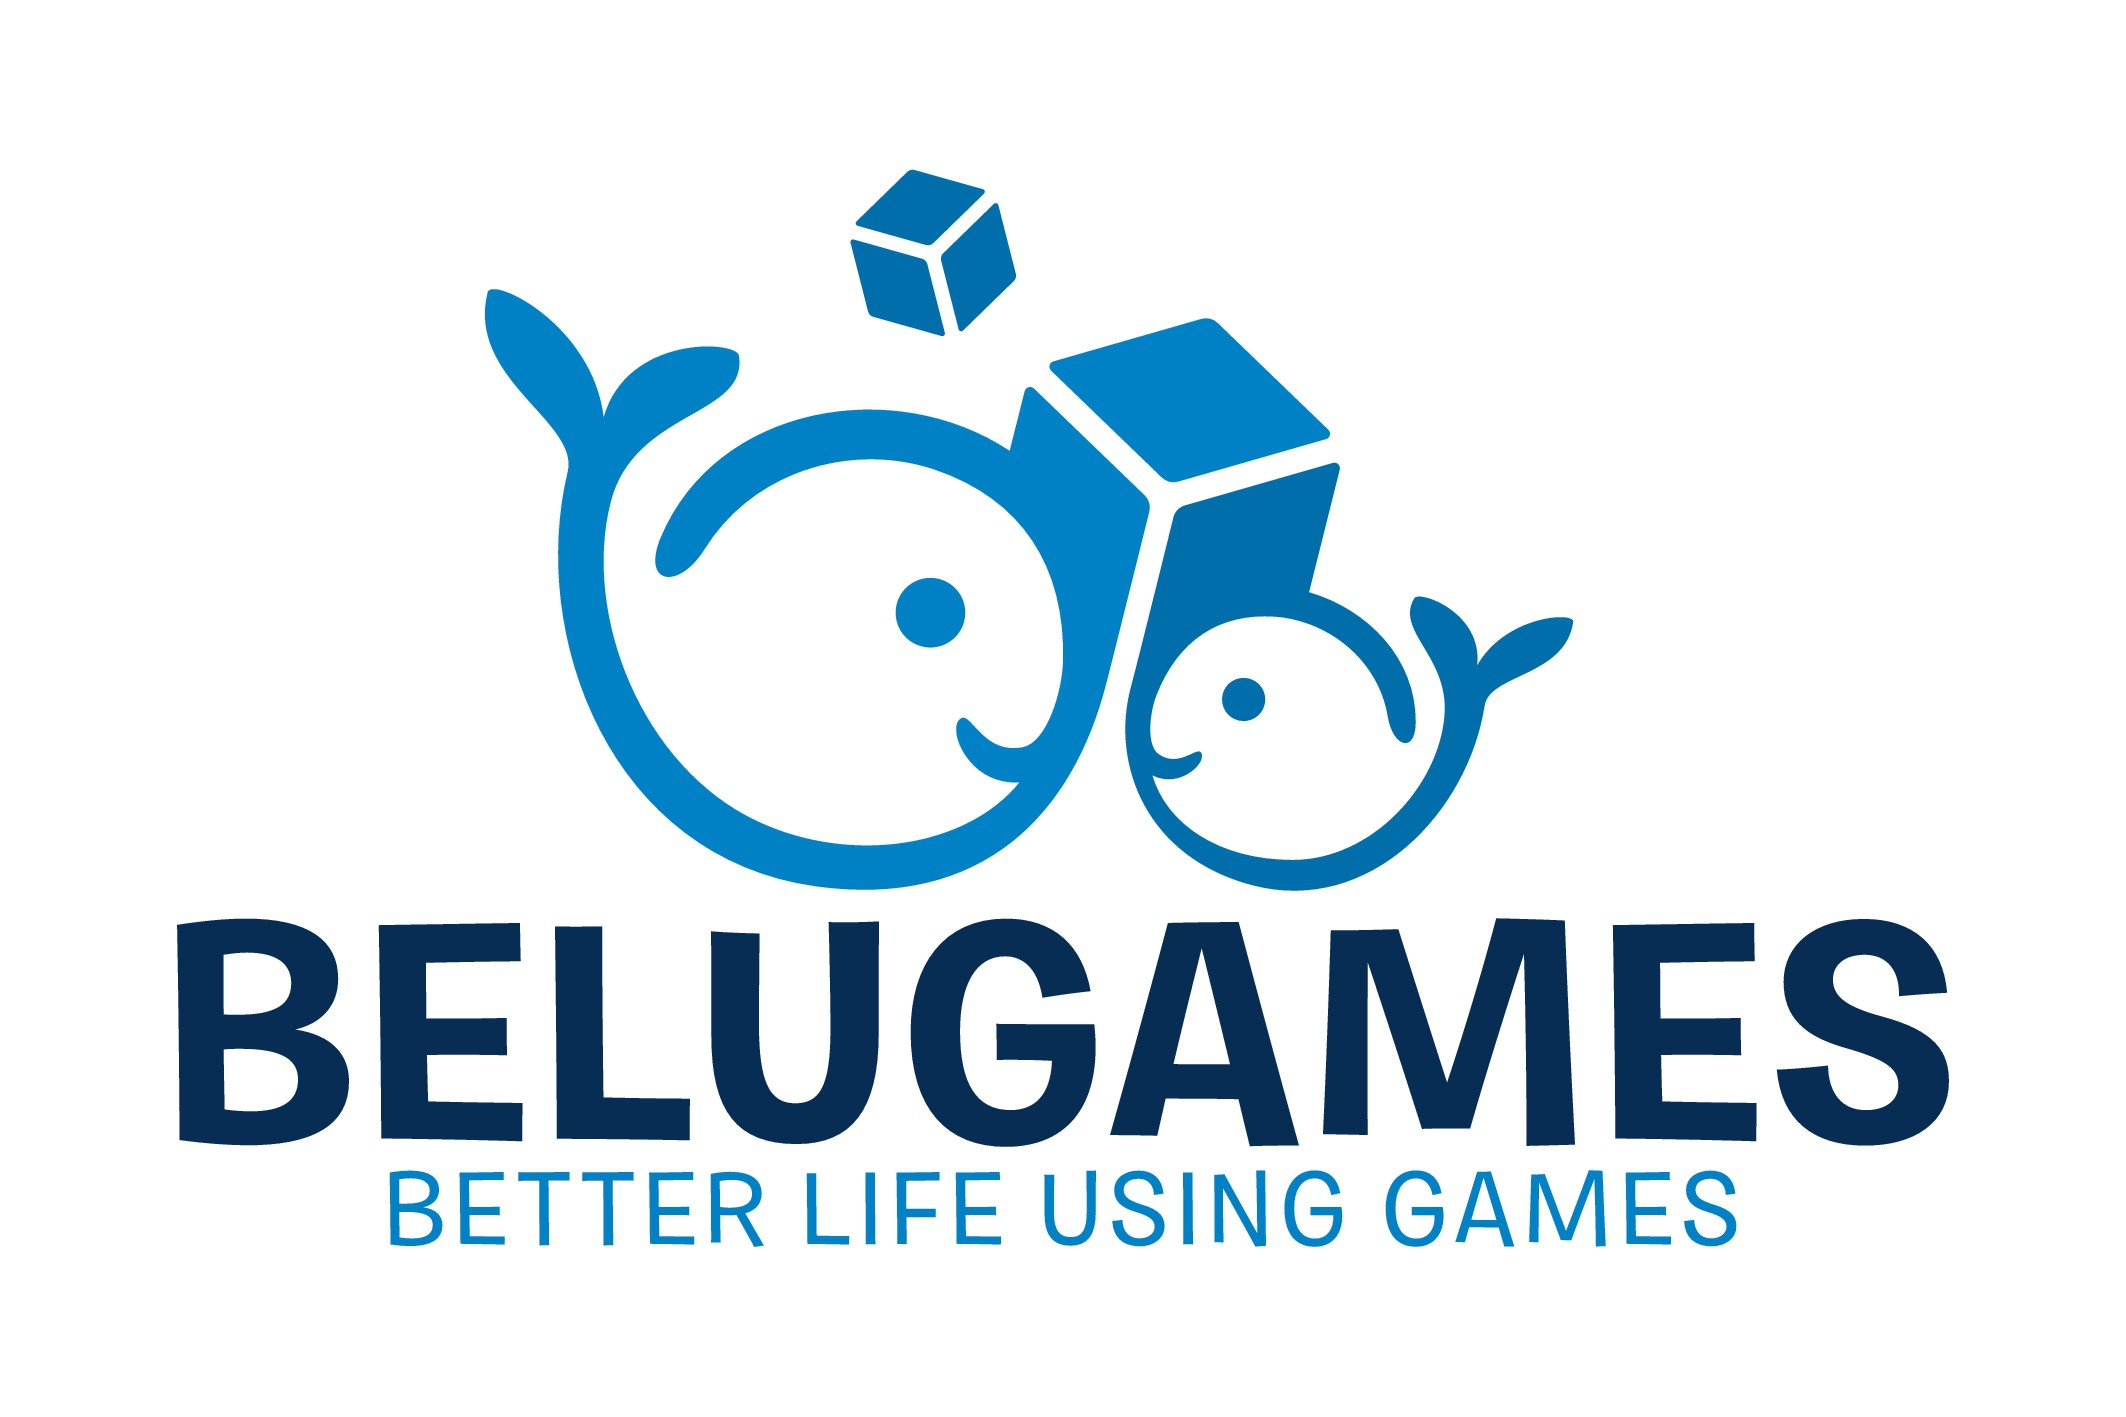 Create an inspiring logo to promote cooperative games